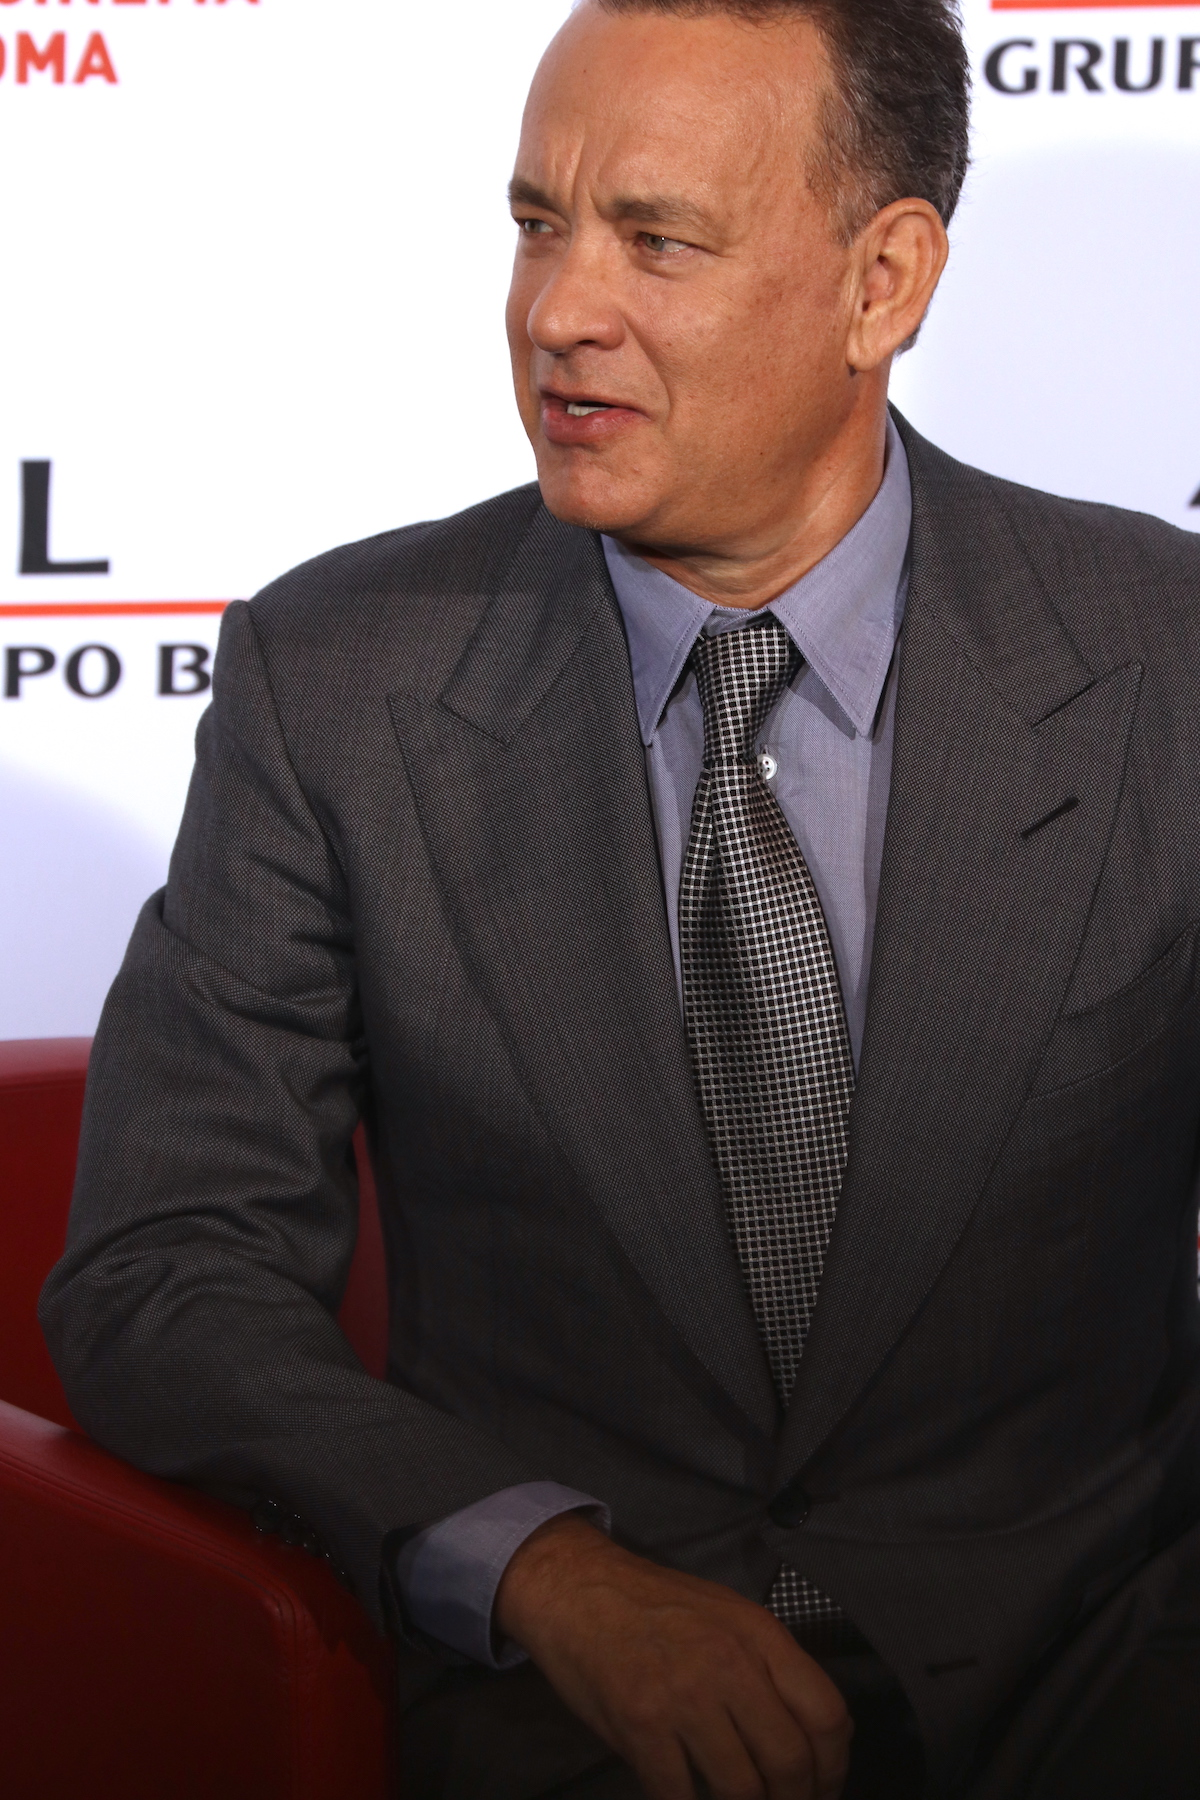 Roma 2016: Tom Hanks durante il photocall